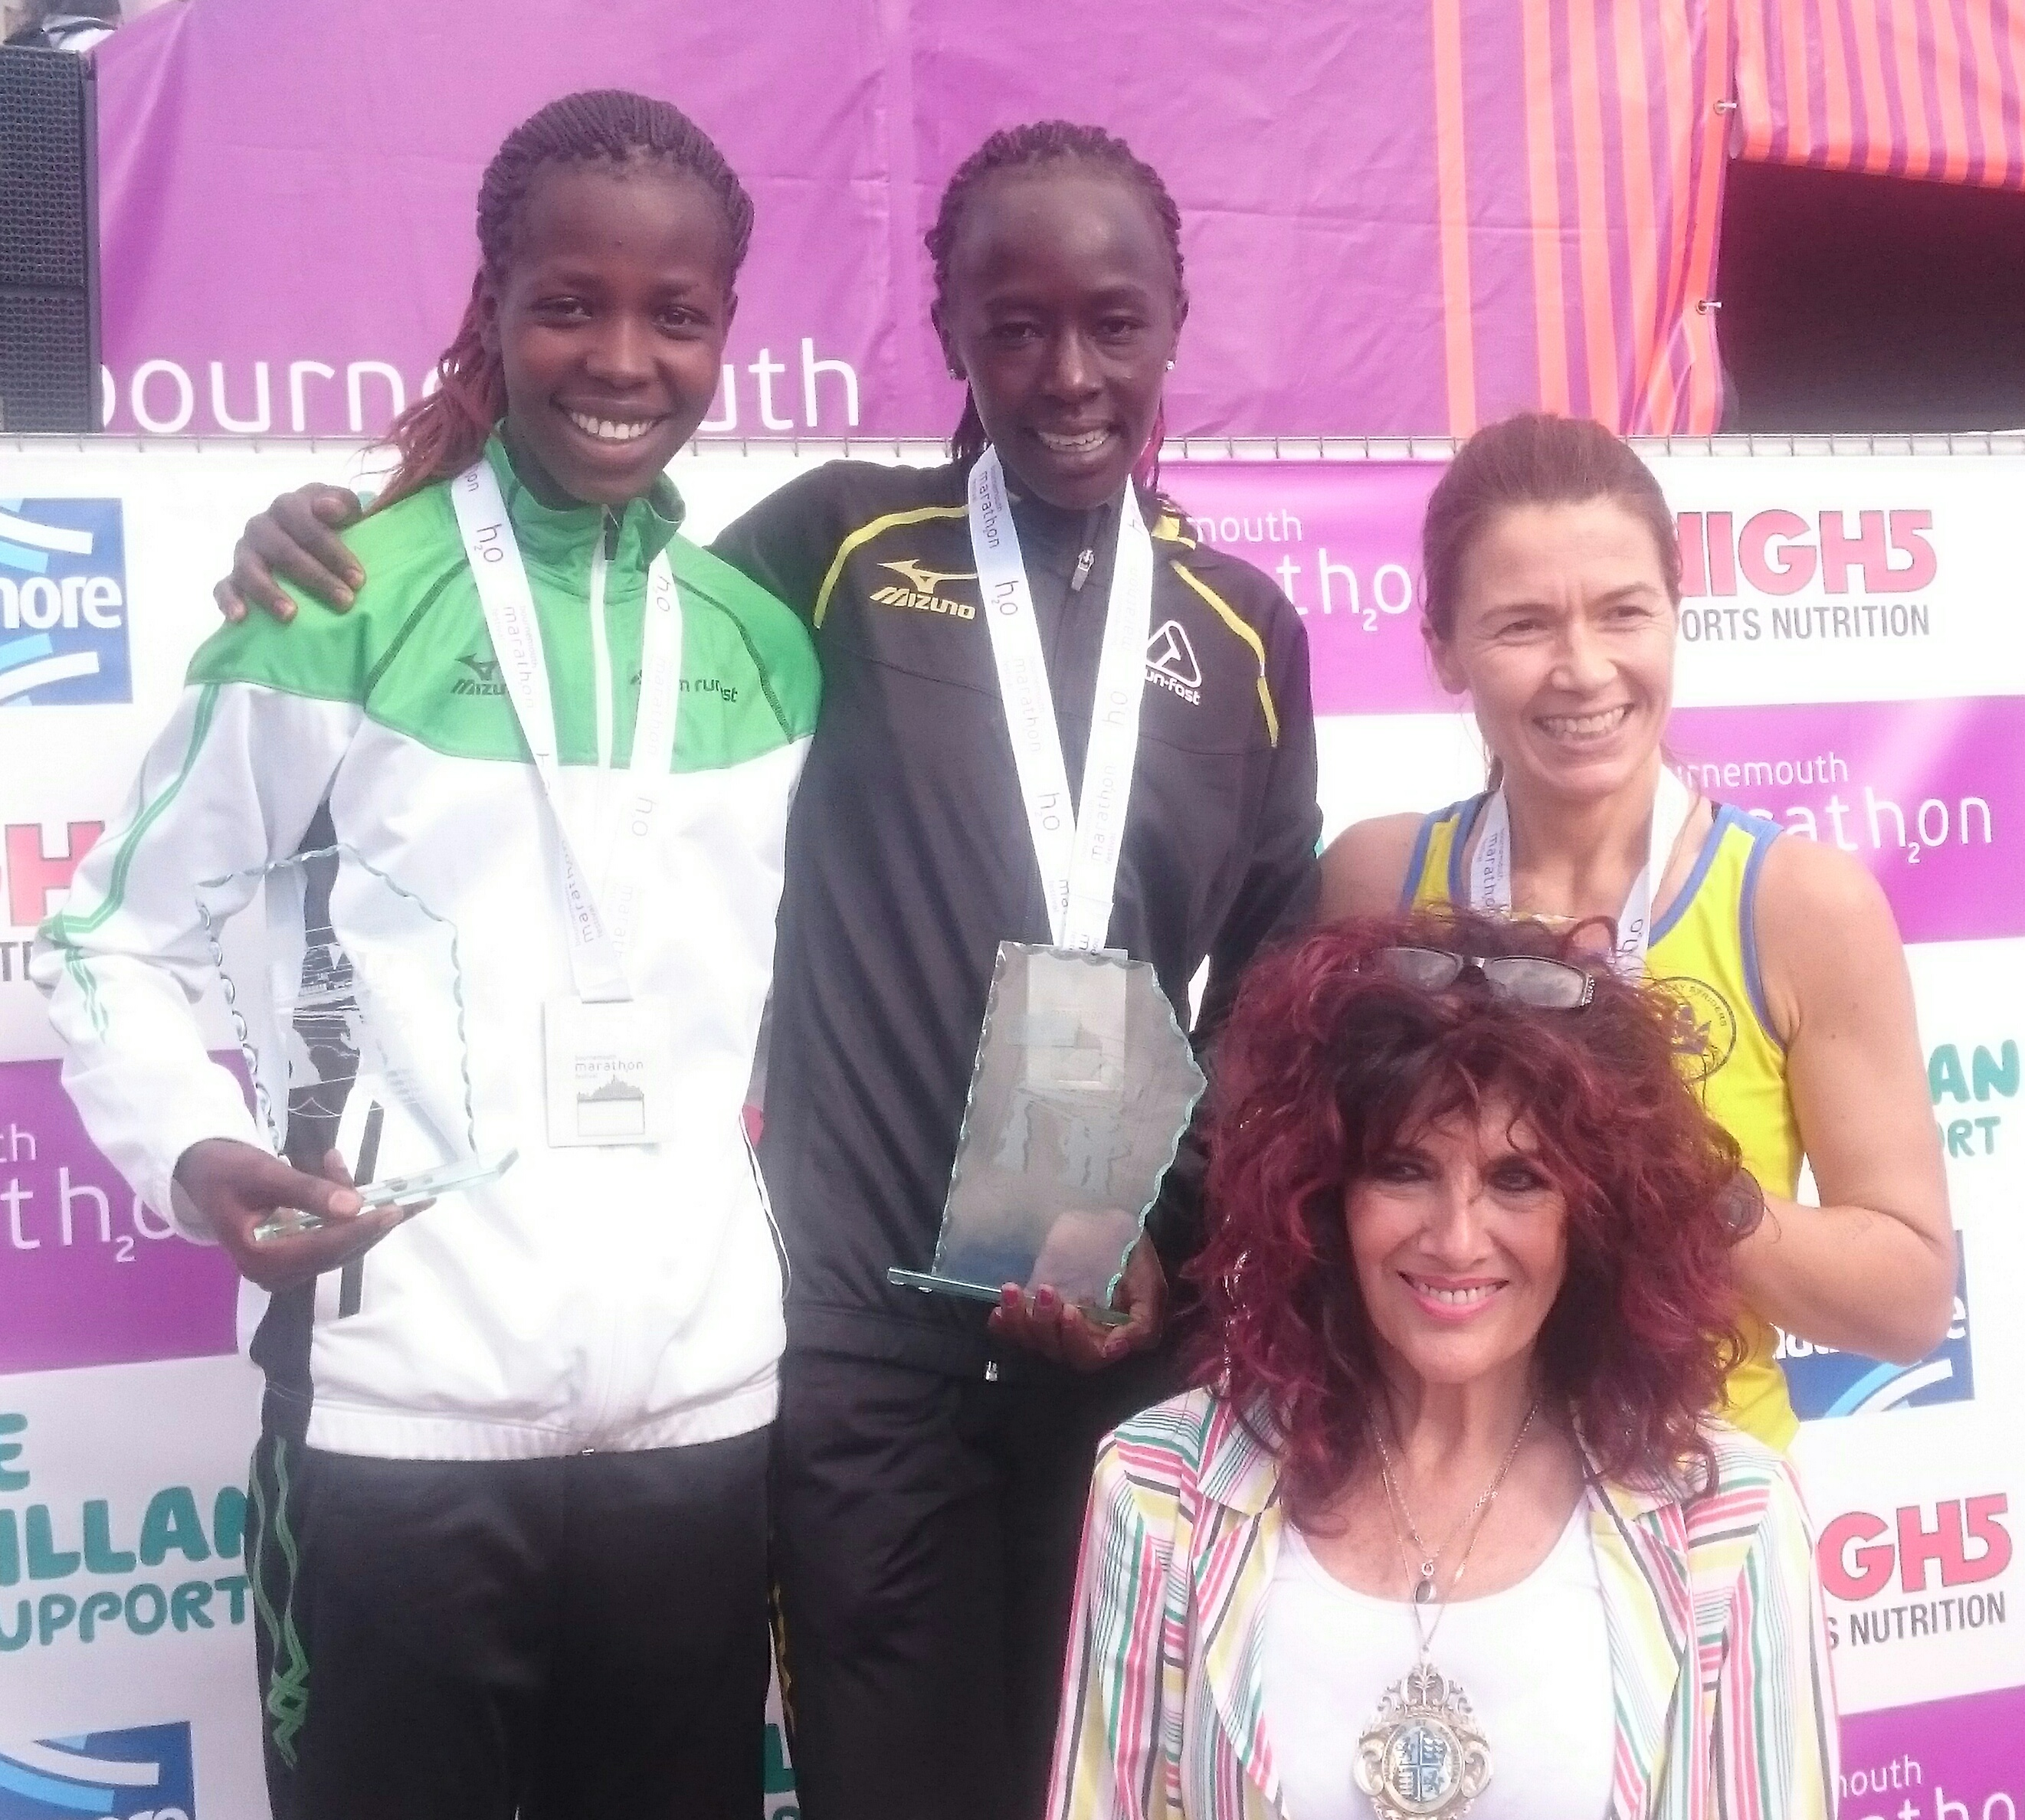 Eddah & Hildah on the Bournemouth Marathon podium with 3rd place Emma Prideaux of Billericay